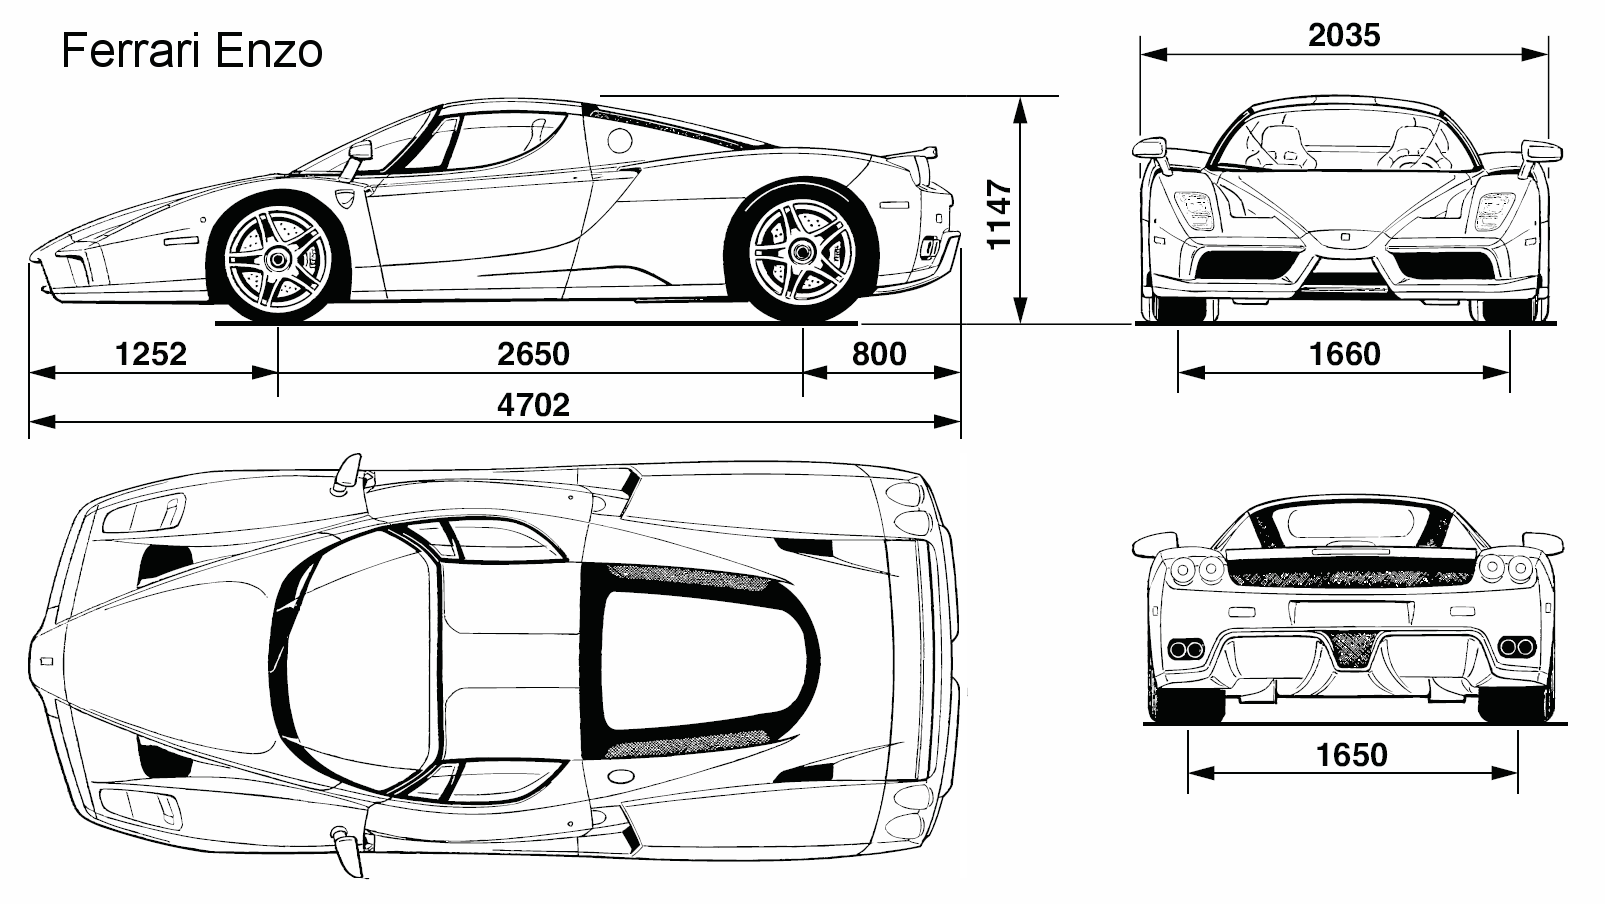 Ferrari enzo blueprint download free blueprint for 3d modeling ferrari enzo blueprint malvernweather